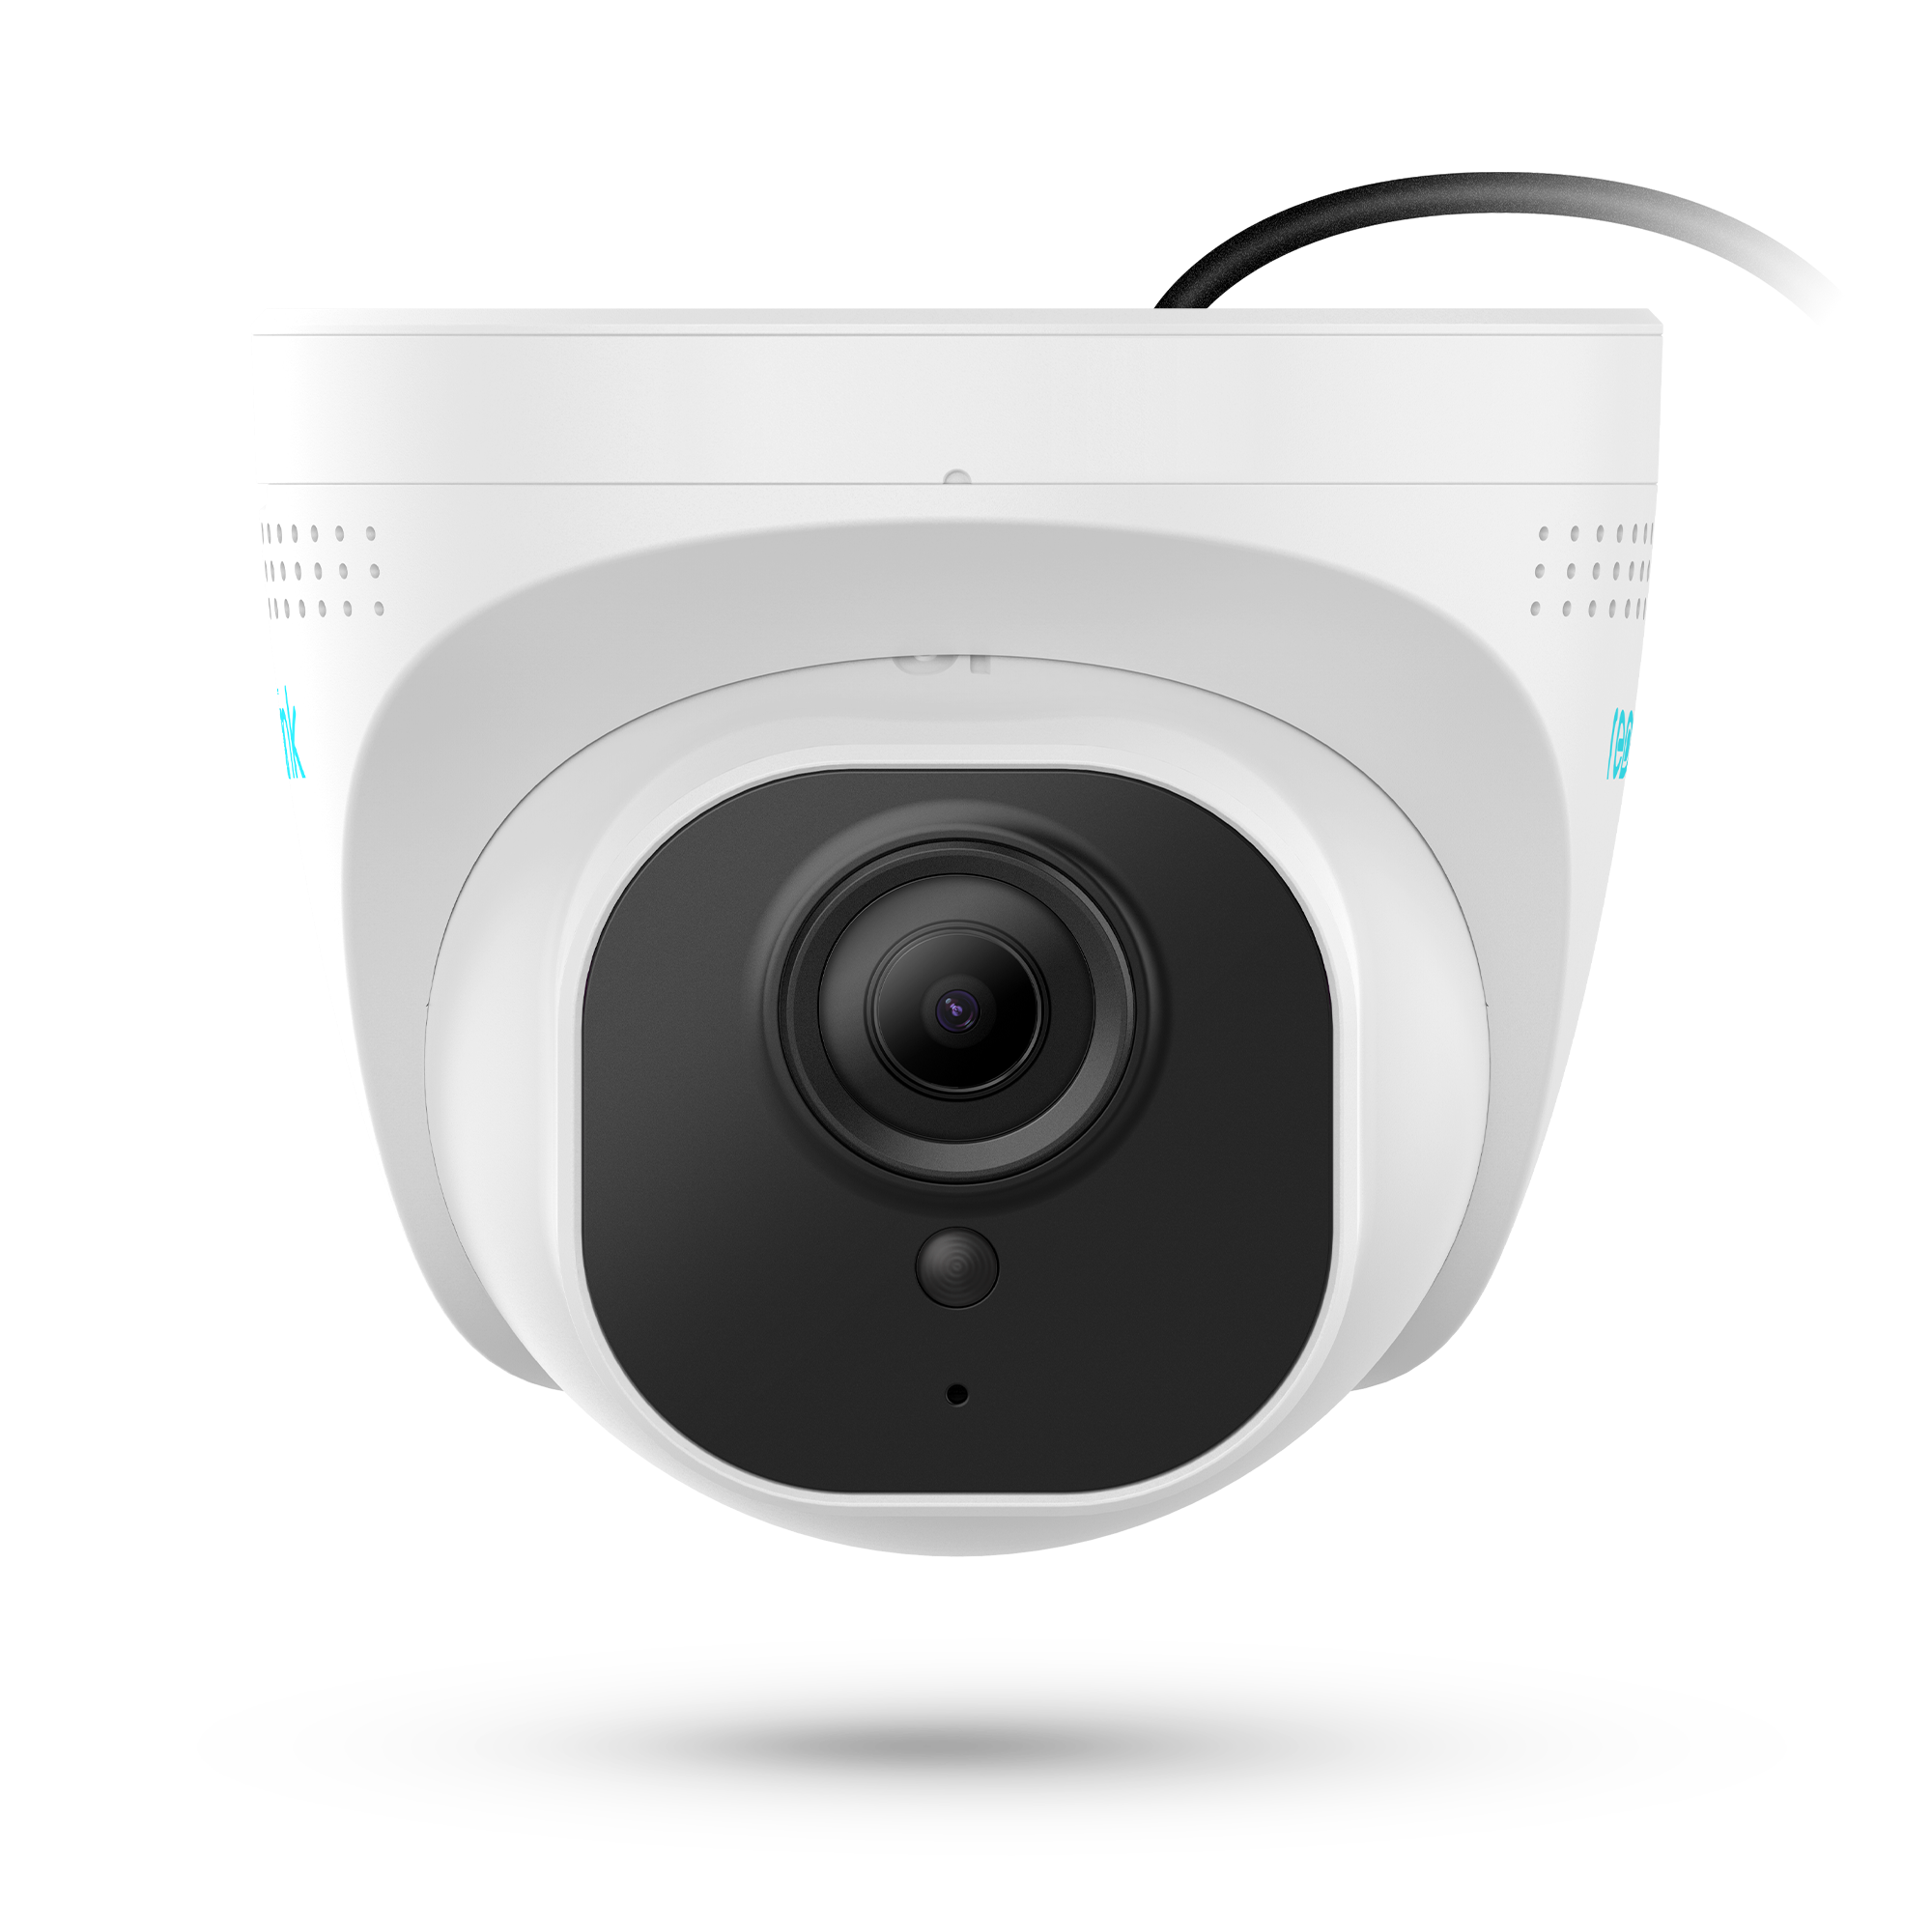 Reolink RLC-520 PoE Dome Outdoor IP66 Weatherproof Security Camera-5MP Motion Detection SD card slot Audio Recording